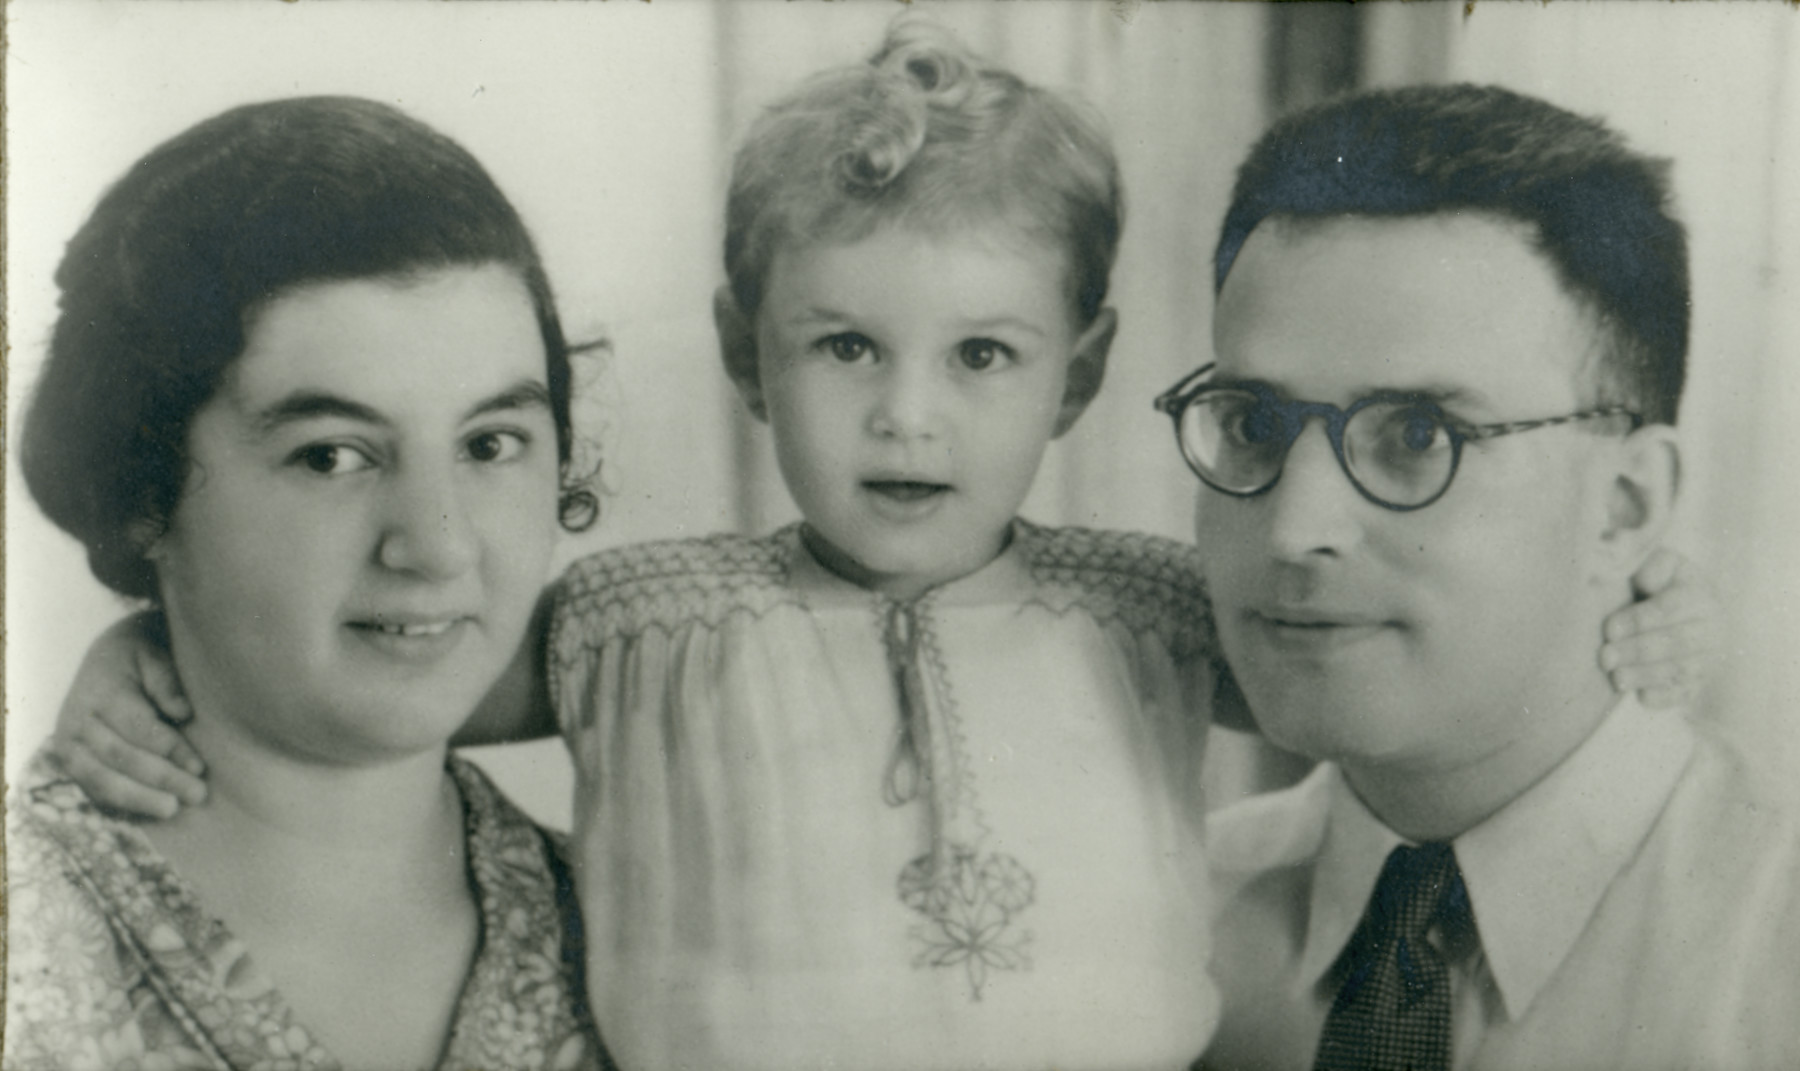 Close-up portrait of the Beninnga family, Dutch Jewish refugees in Indonesia.  Pictured are Lena, Chana and Noah Benninga.